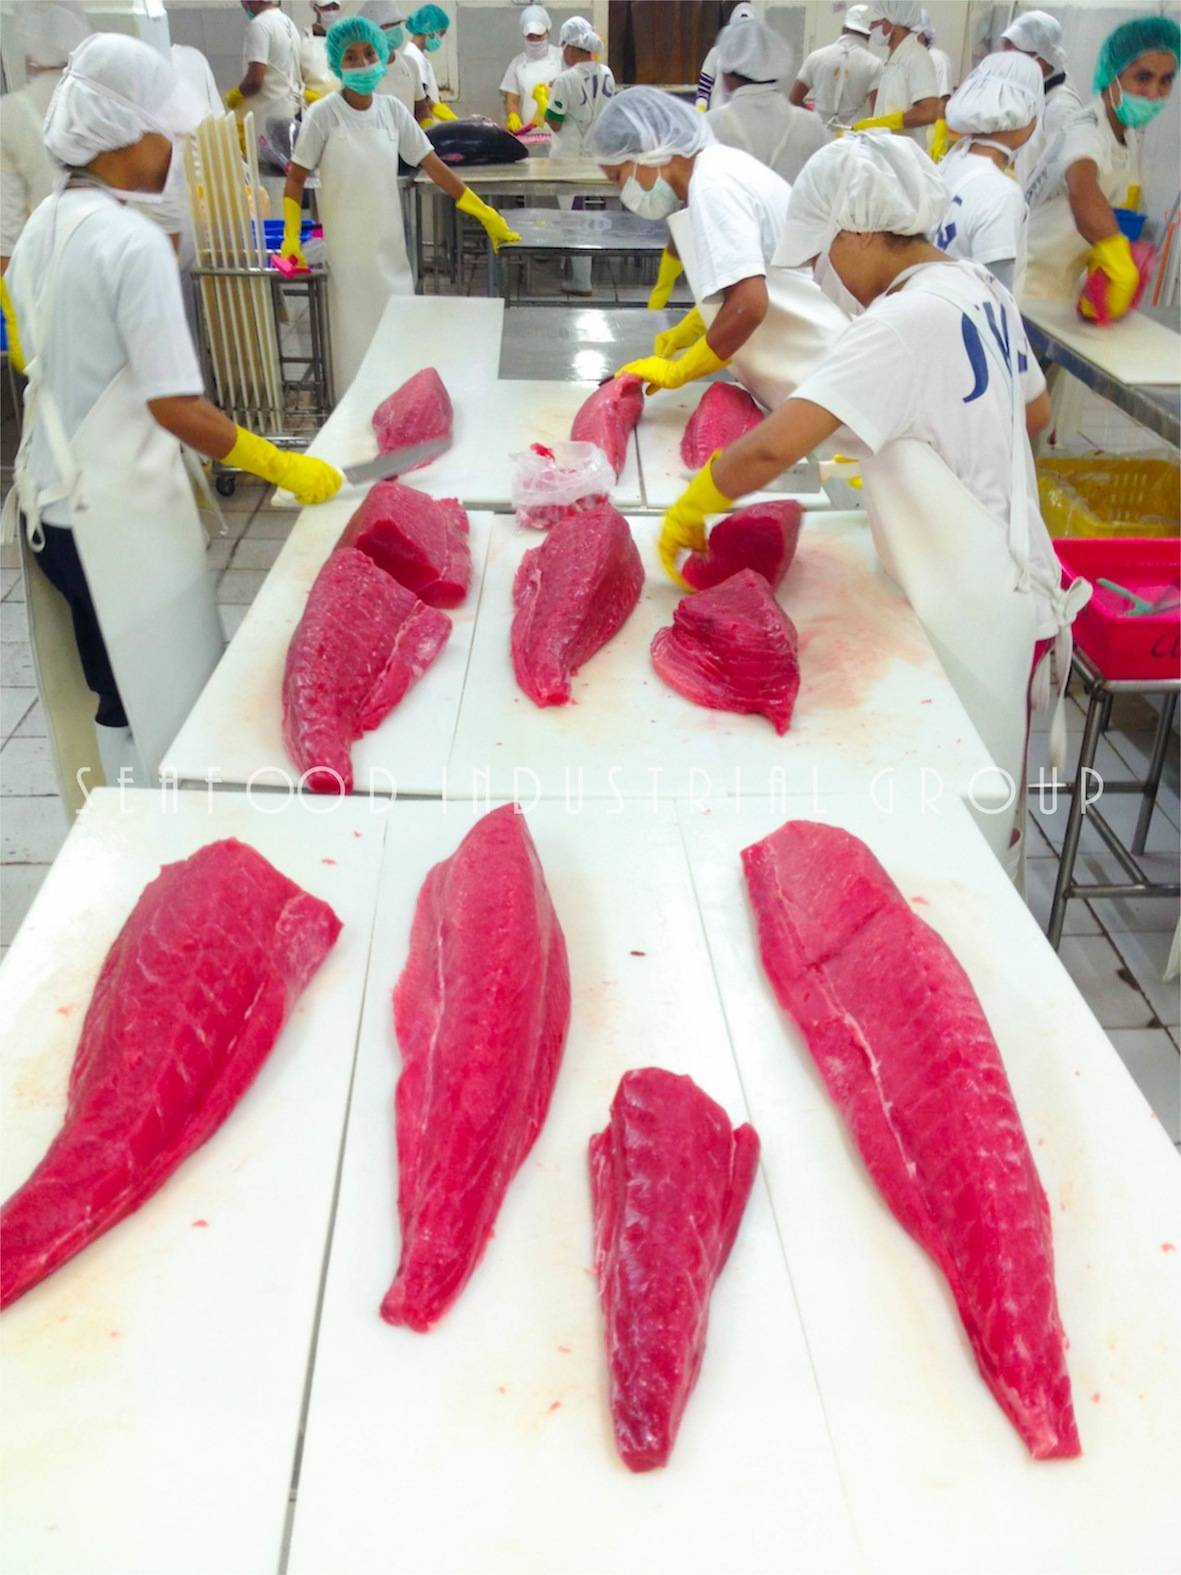 PREMIUM YELLOWFIN TUNA LOINS